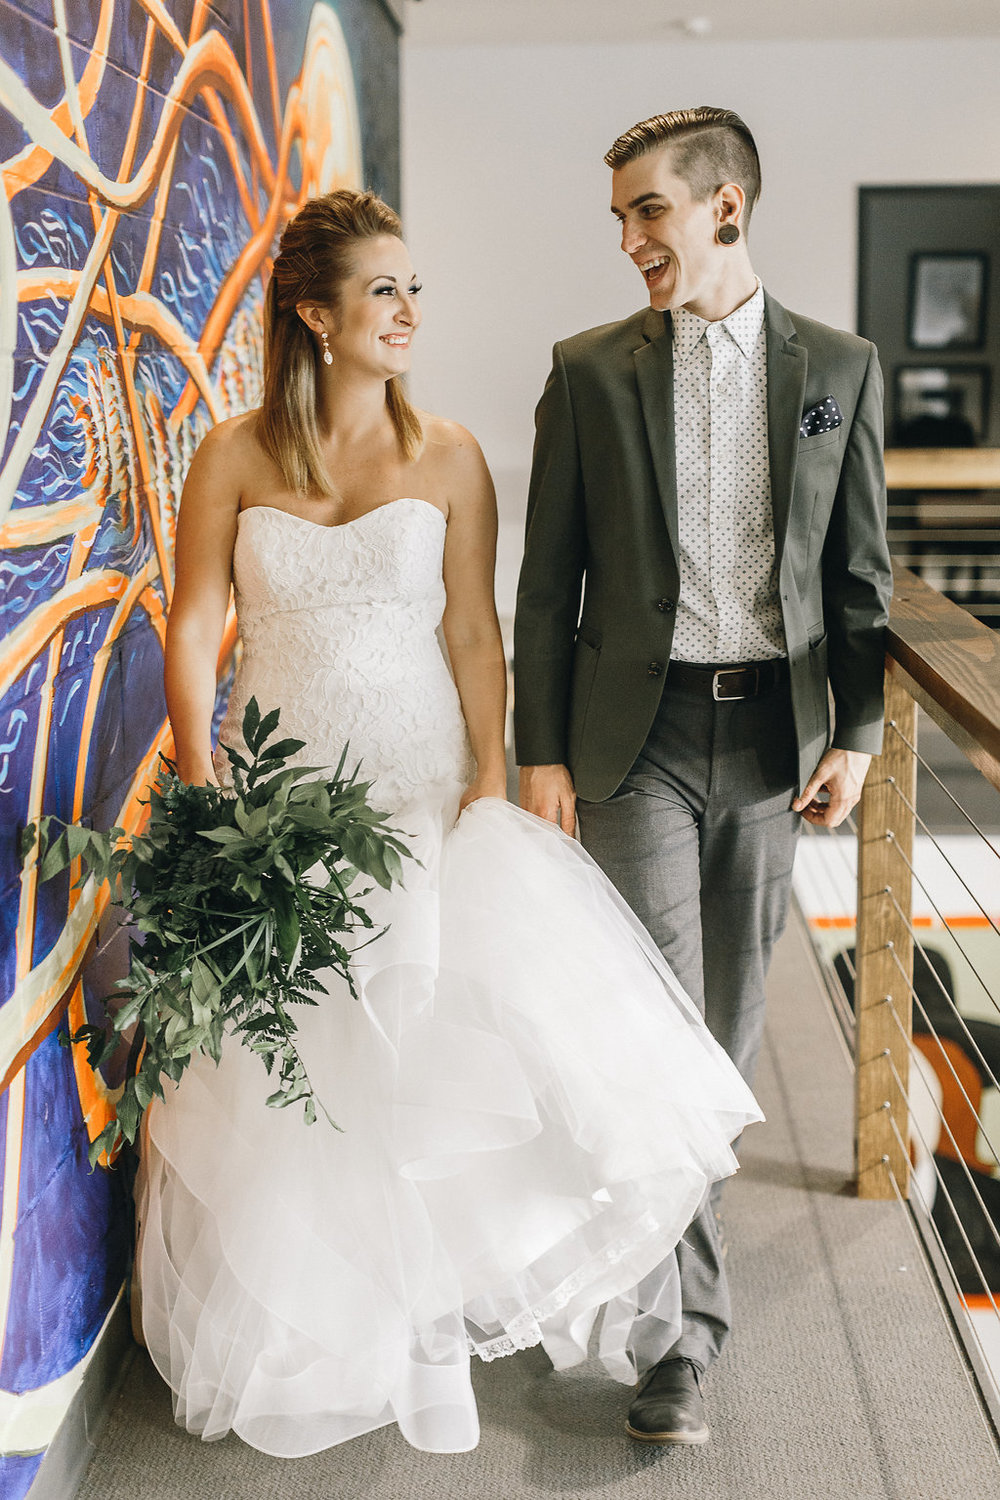 Stairway-to-Matrimony-mackensey-alexander-the-garage-savannah-ivory-and-beau-bridal-boutique-azi-blush-by-hayley-paige-indie-wedding-music-wedding-recording-studio-wedding-savannah-wedding-planner-savannah-florist-savannah-bridal-gowns-7.jpg